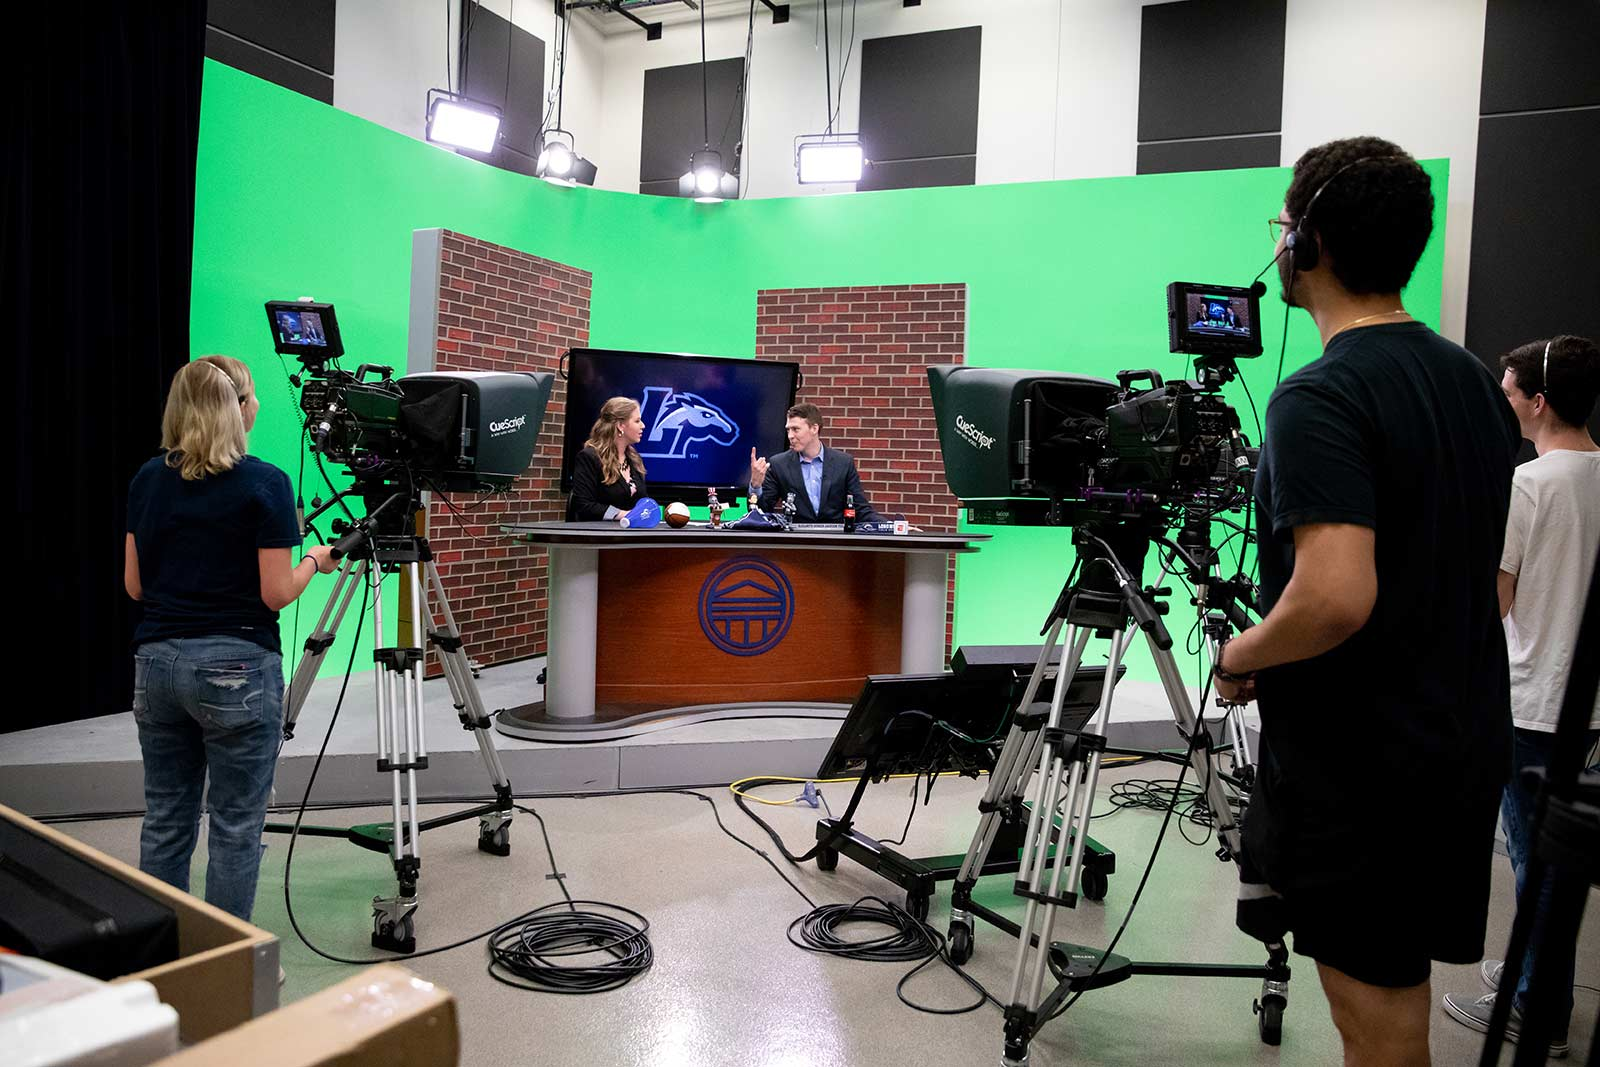 Practical experiences lead to the best learning—at least that's what we've figured out in our communication studies classrooms. Students studying broadcast media produce a weekly news show to keep everyone in the loop.